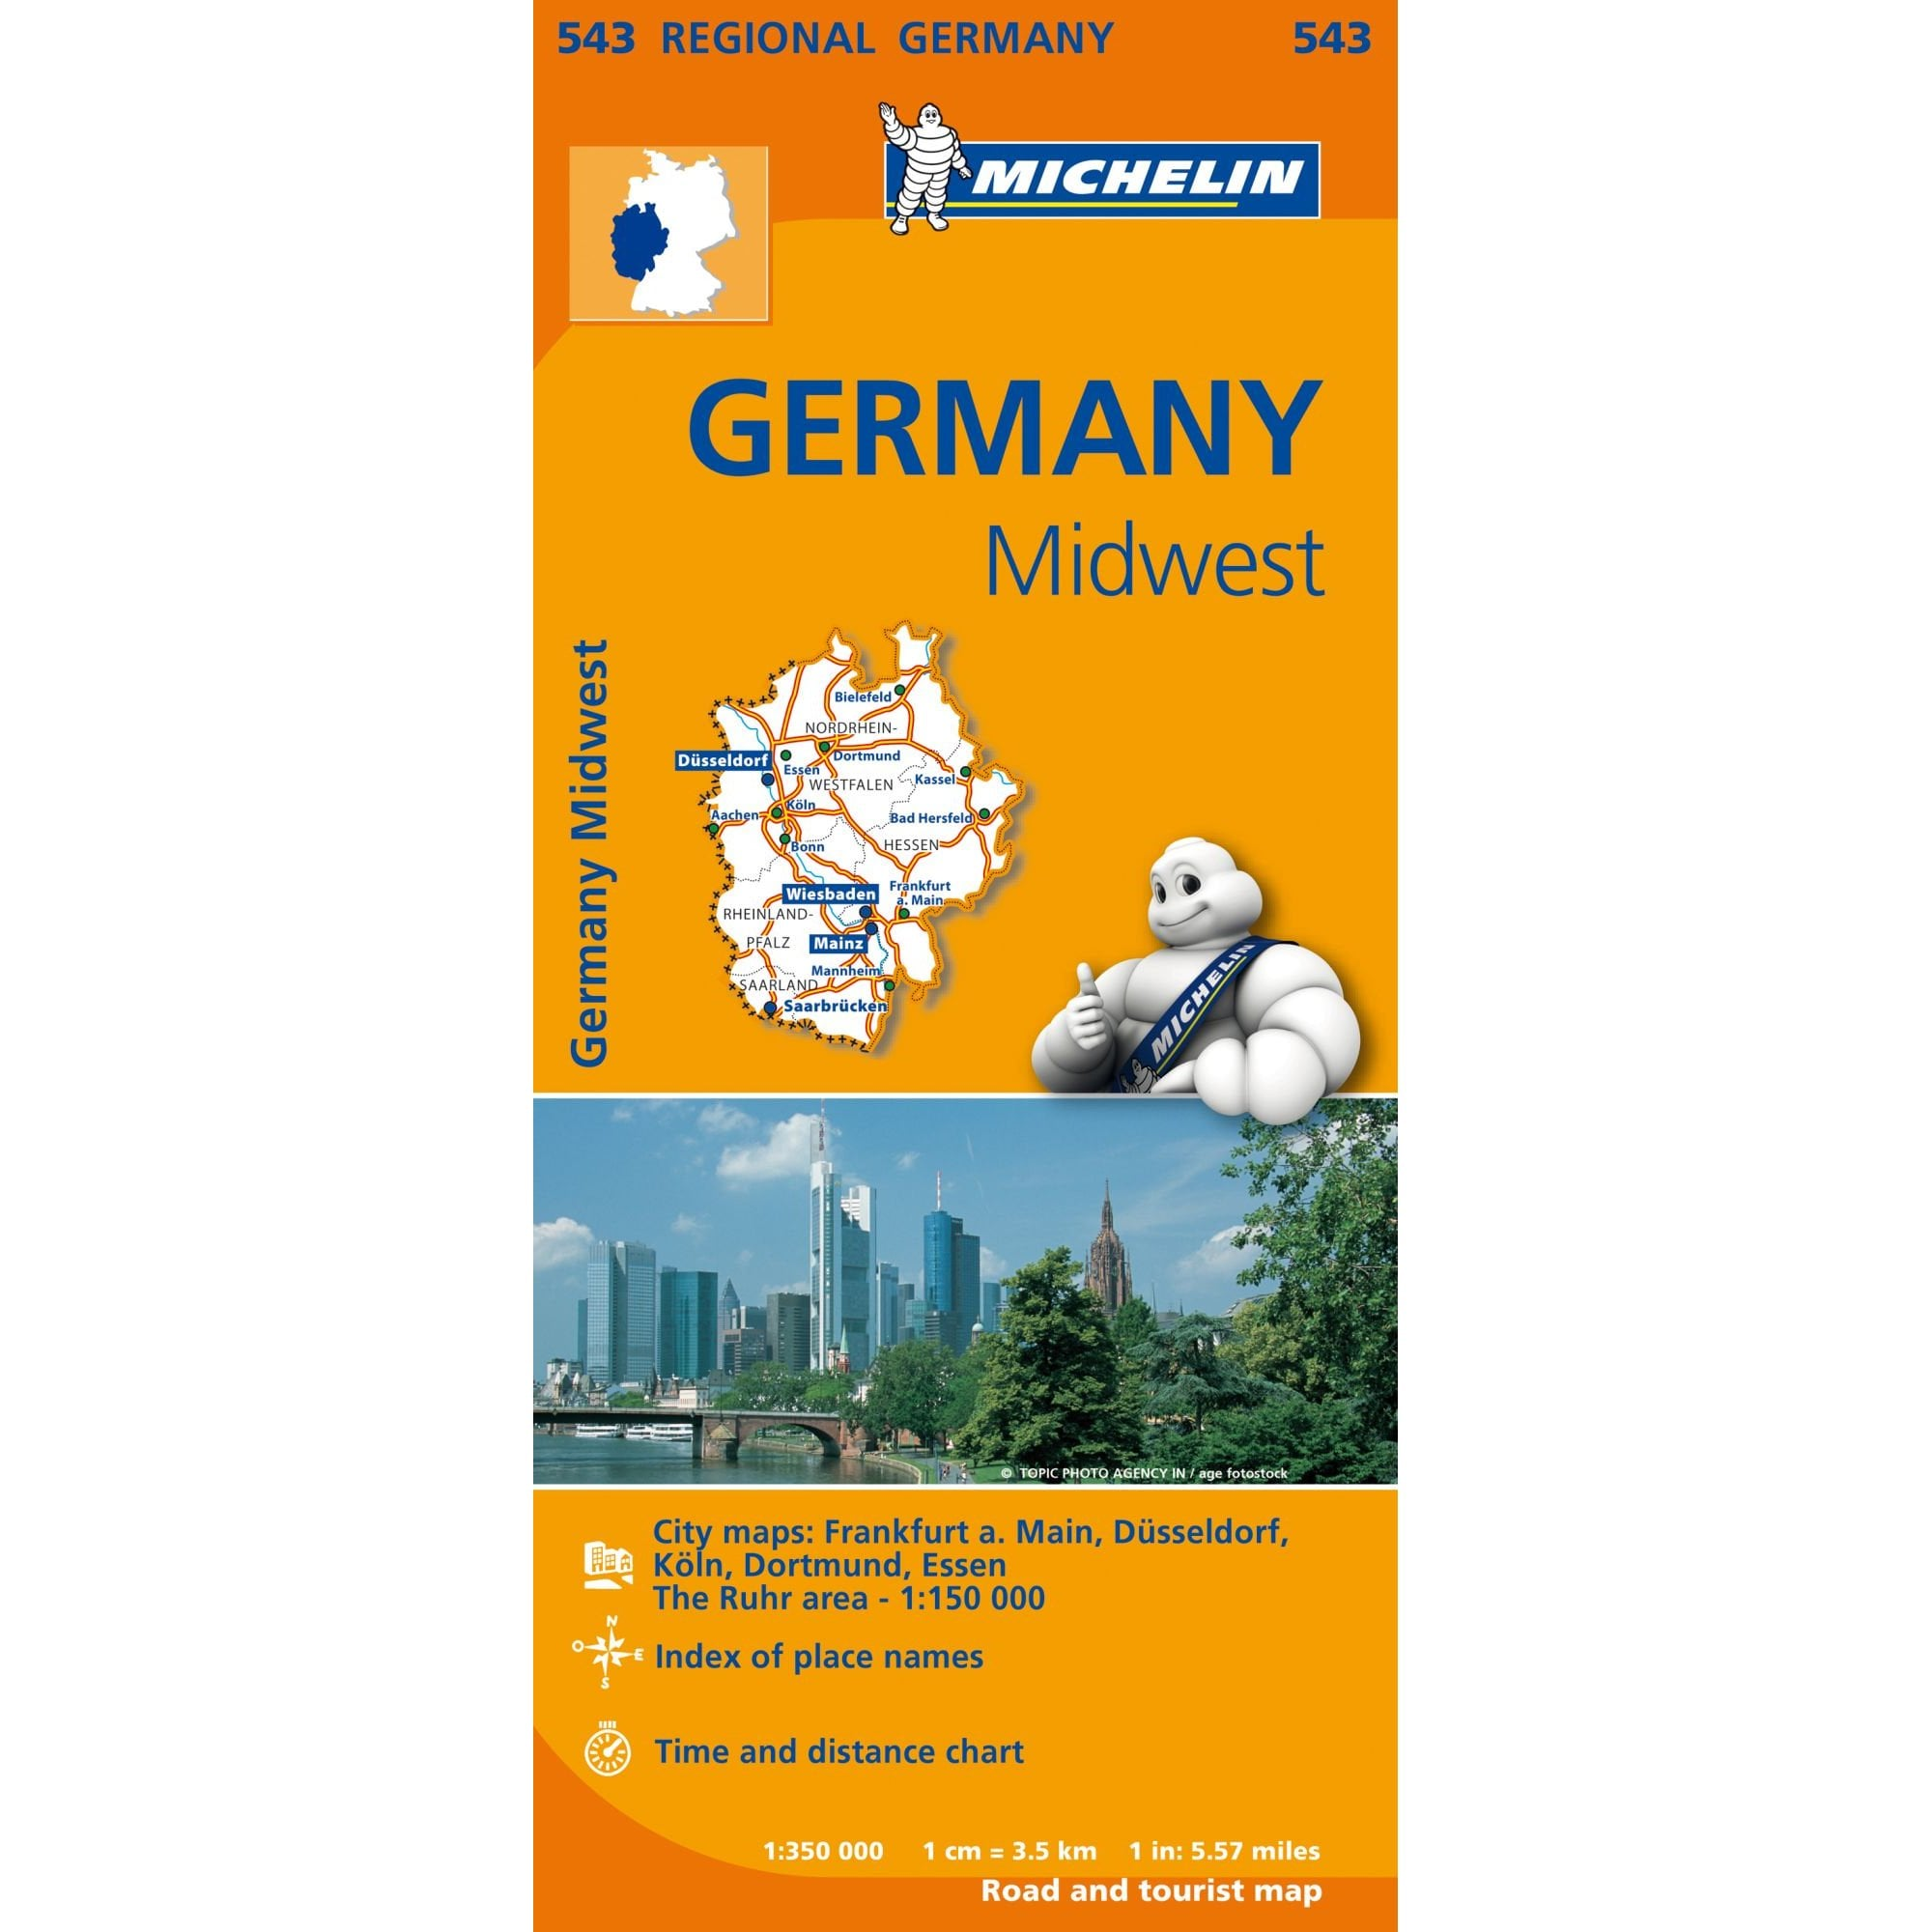 Image of: Michelin Regional Road Map 543 Germany Midwest